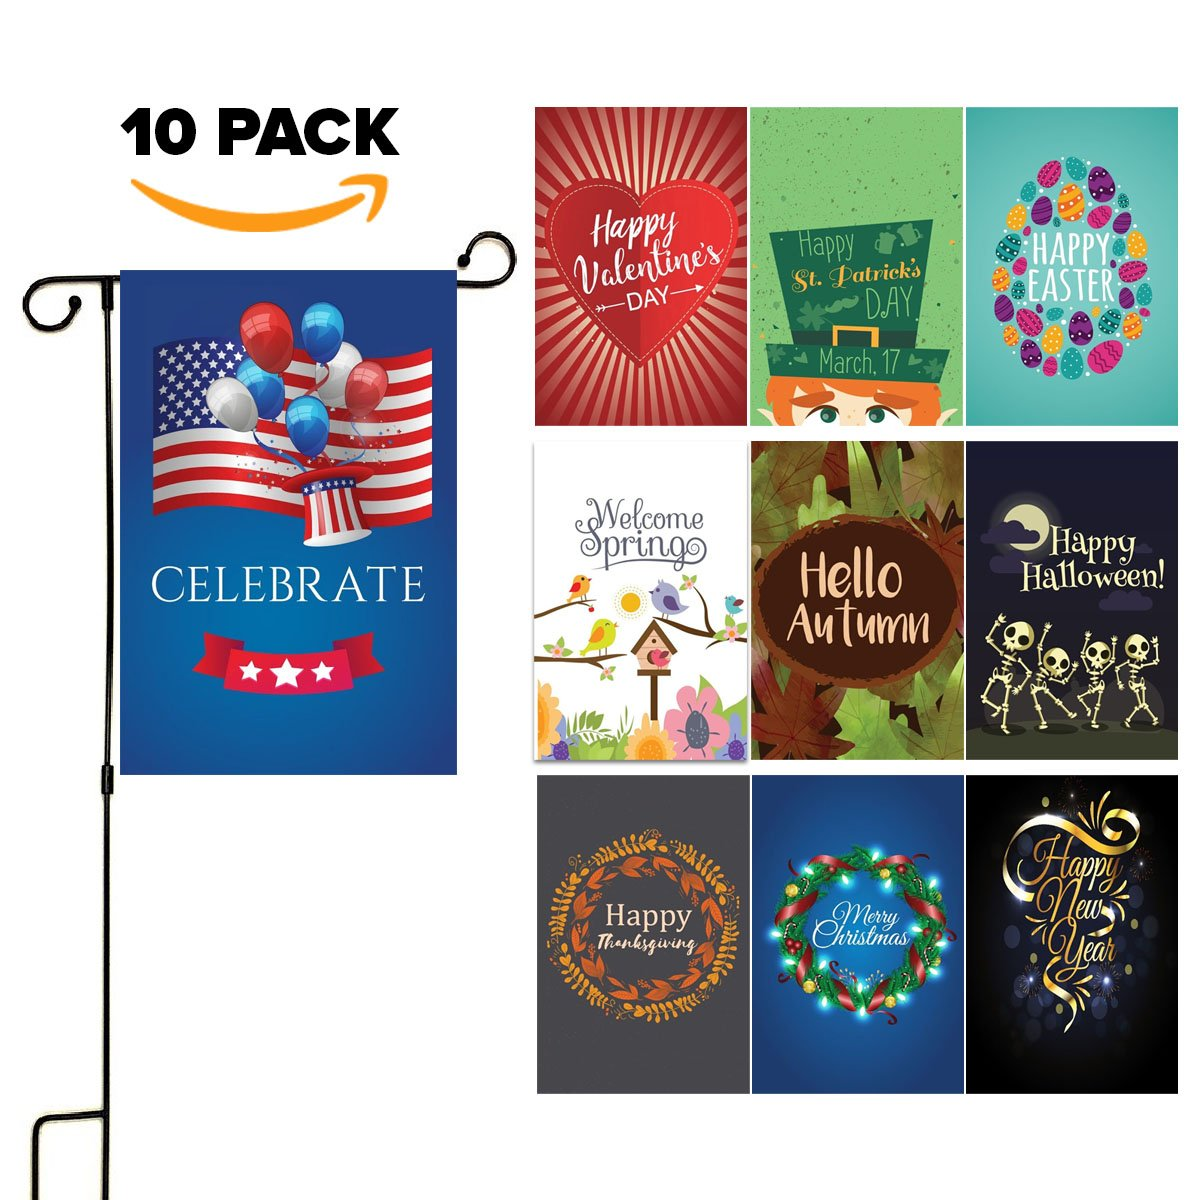 Seasonal Yard Garden Flag Set - Double Sided 12'' x 18'' Front Porch Seasonal Flags For House Yard - Top Themes, Christmas, Halloween, Thanksgiving & More - Outdoor Weatherproof & USA Designed - 10 Pack